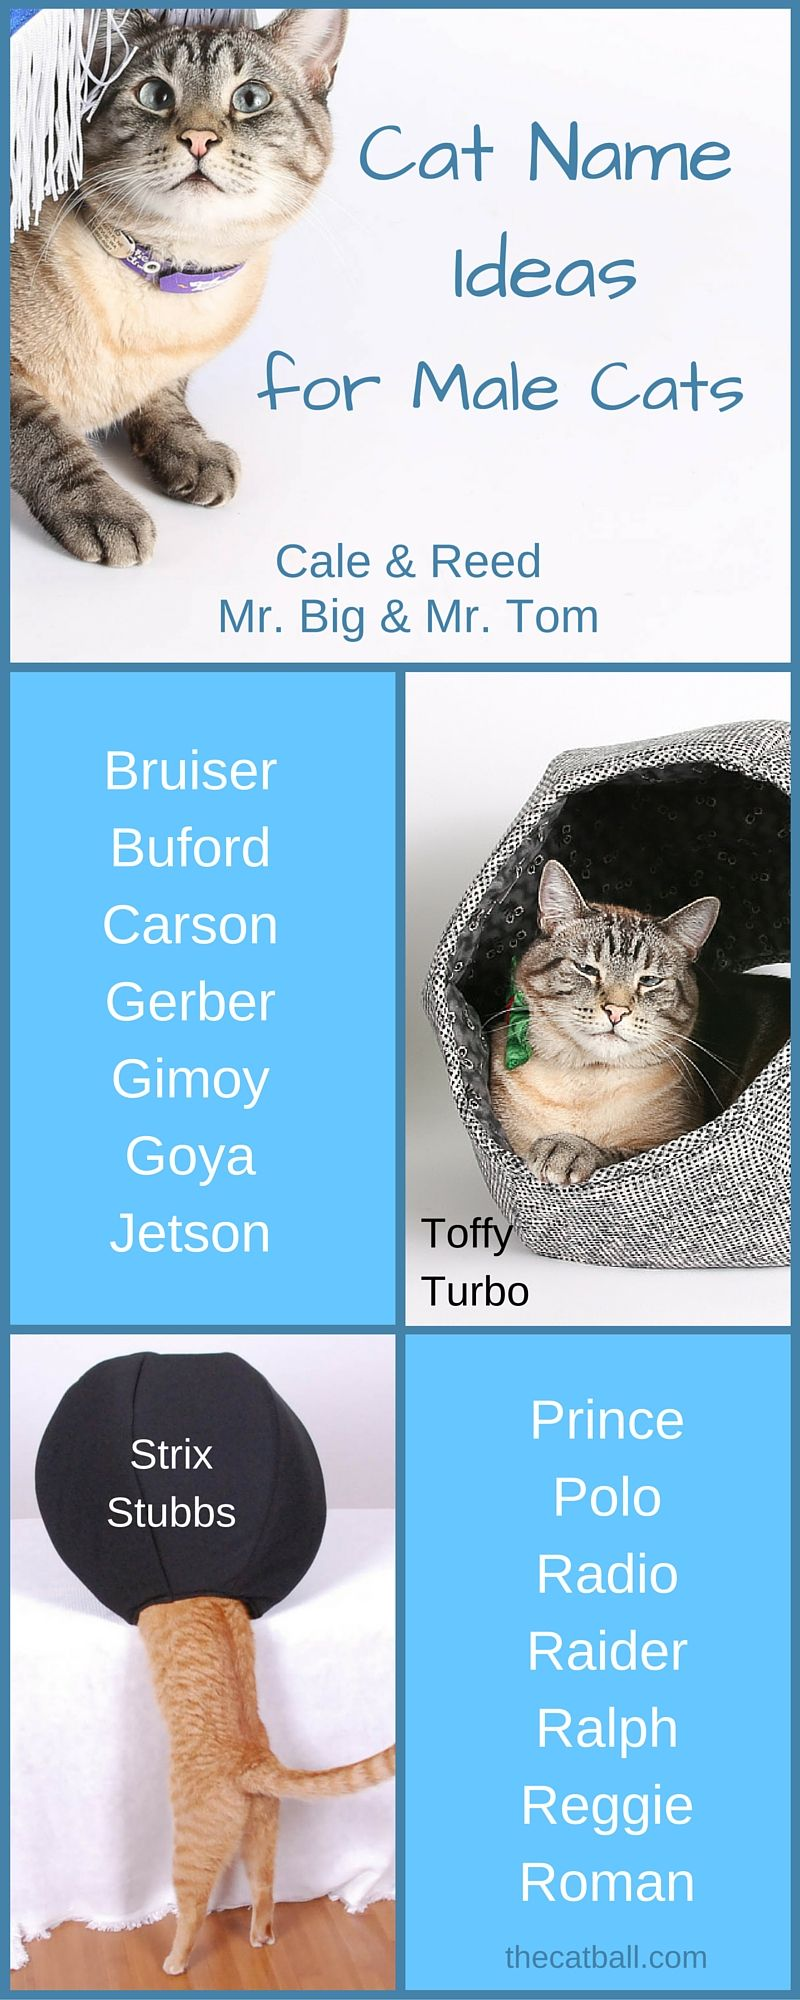 Cat Name Ideas for Male Cats Cat names, Kitten names